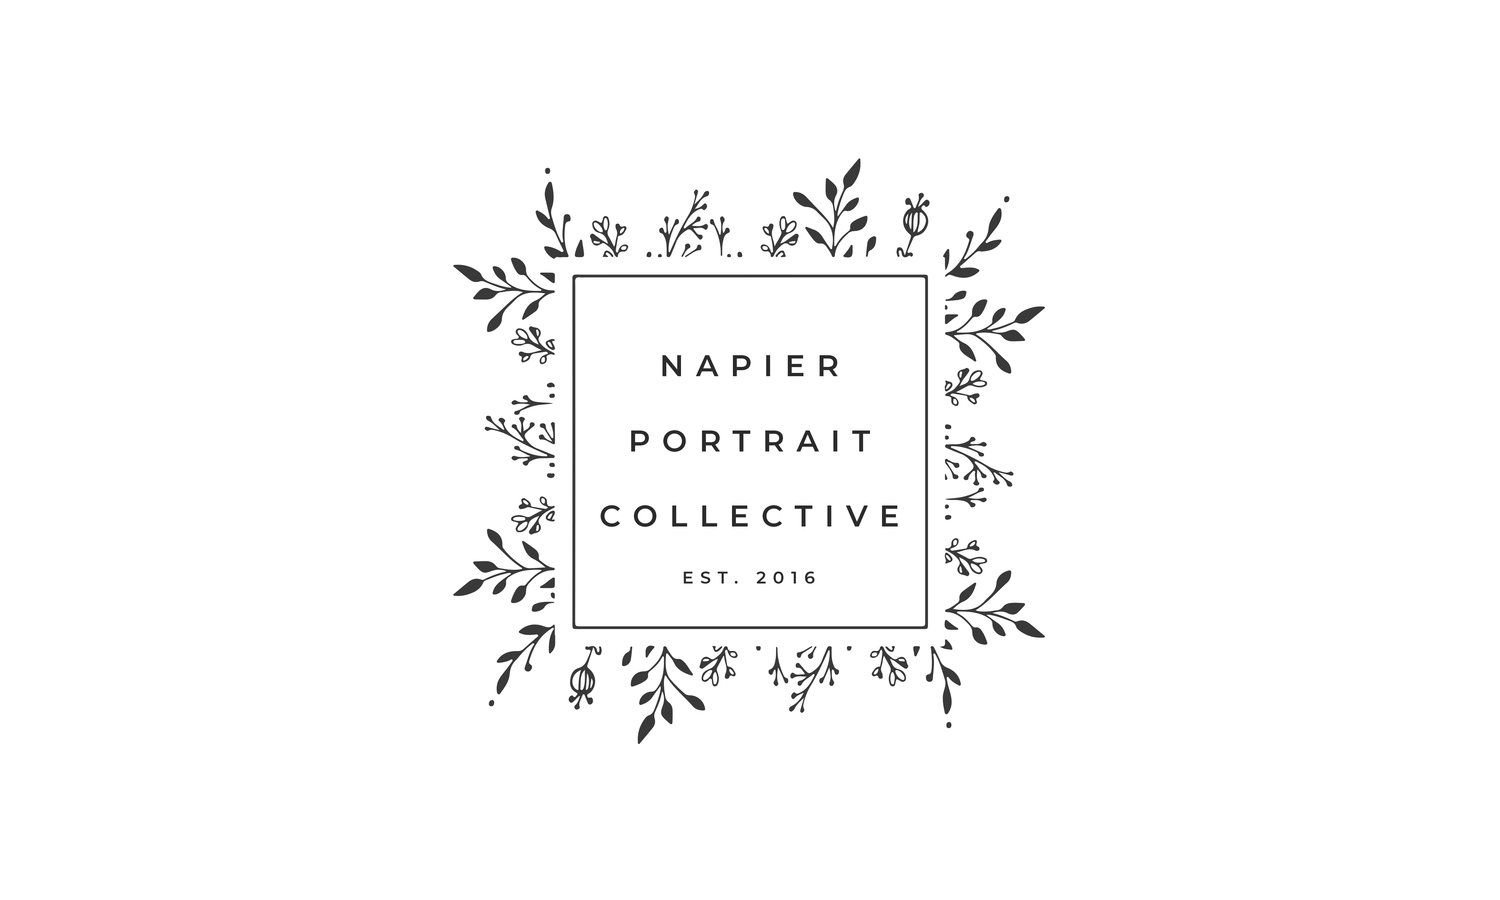 napier portrait collective